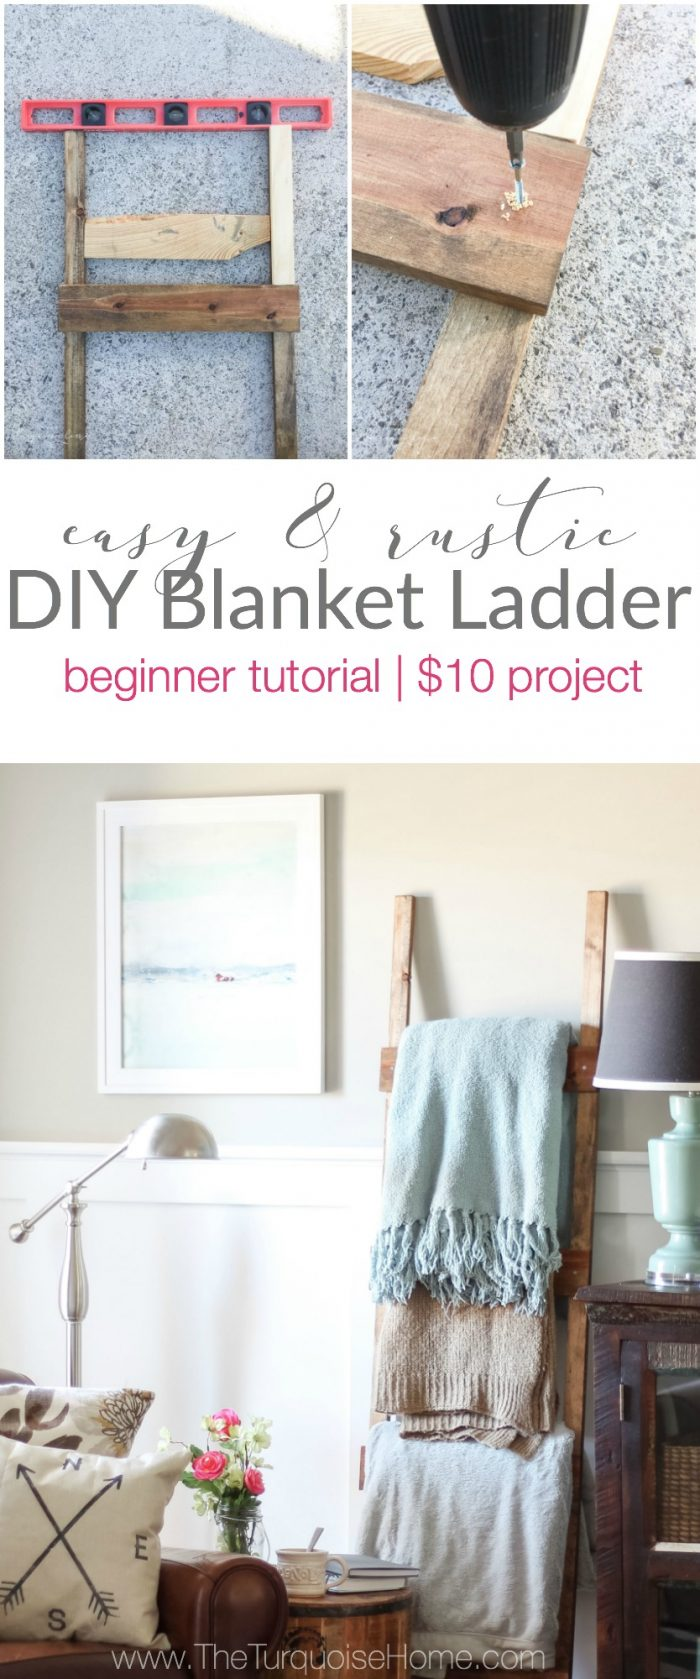 Easy & Rustic DIY Blanket Ladder For Less Than $10 by The Turquoise Home featured on Totally Terrific Tuesday hosted by Eight Pepperberries